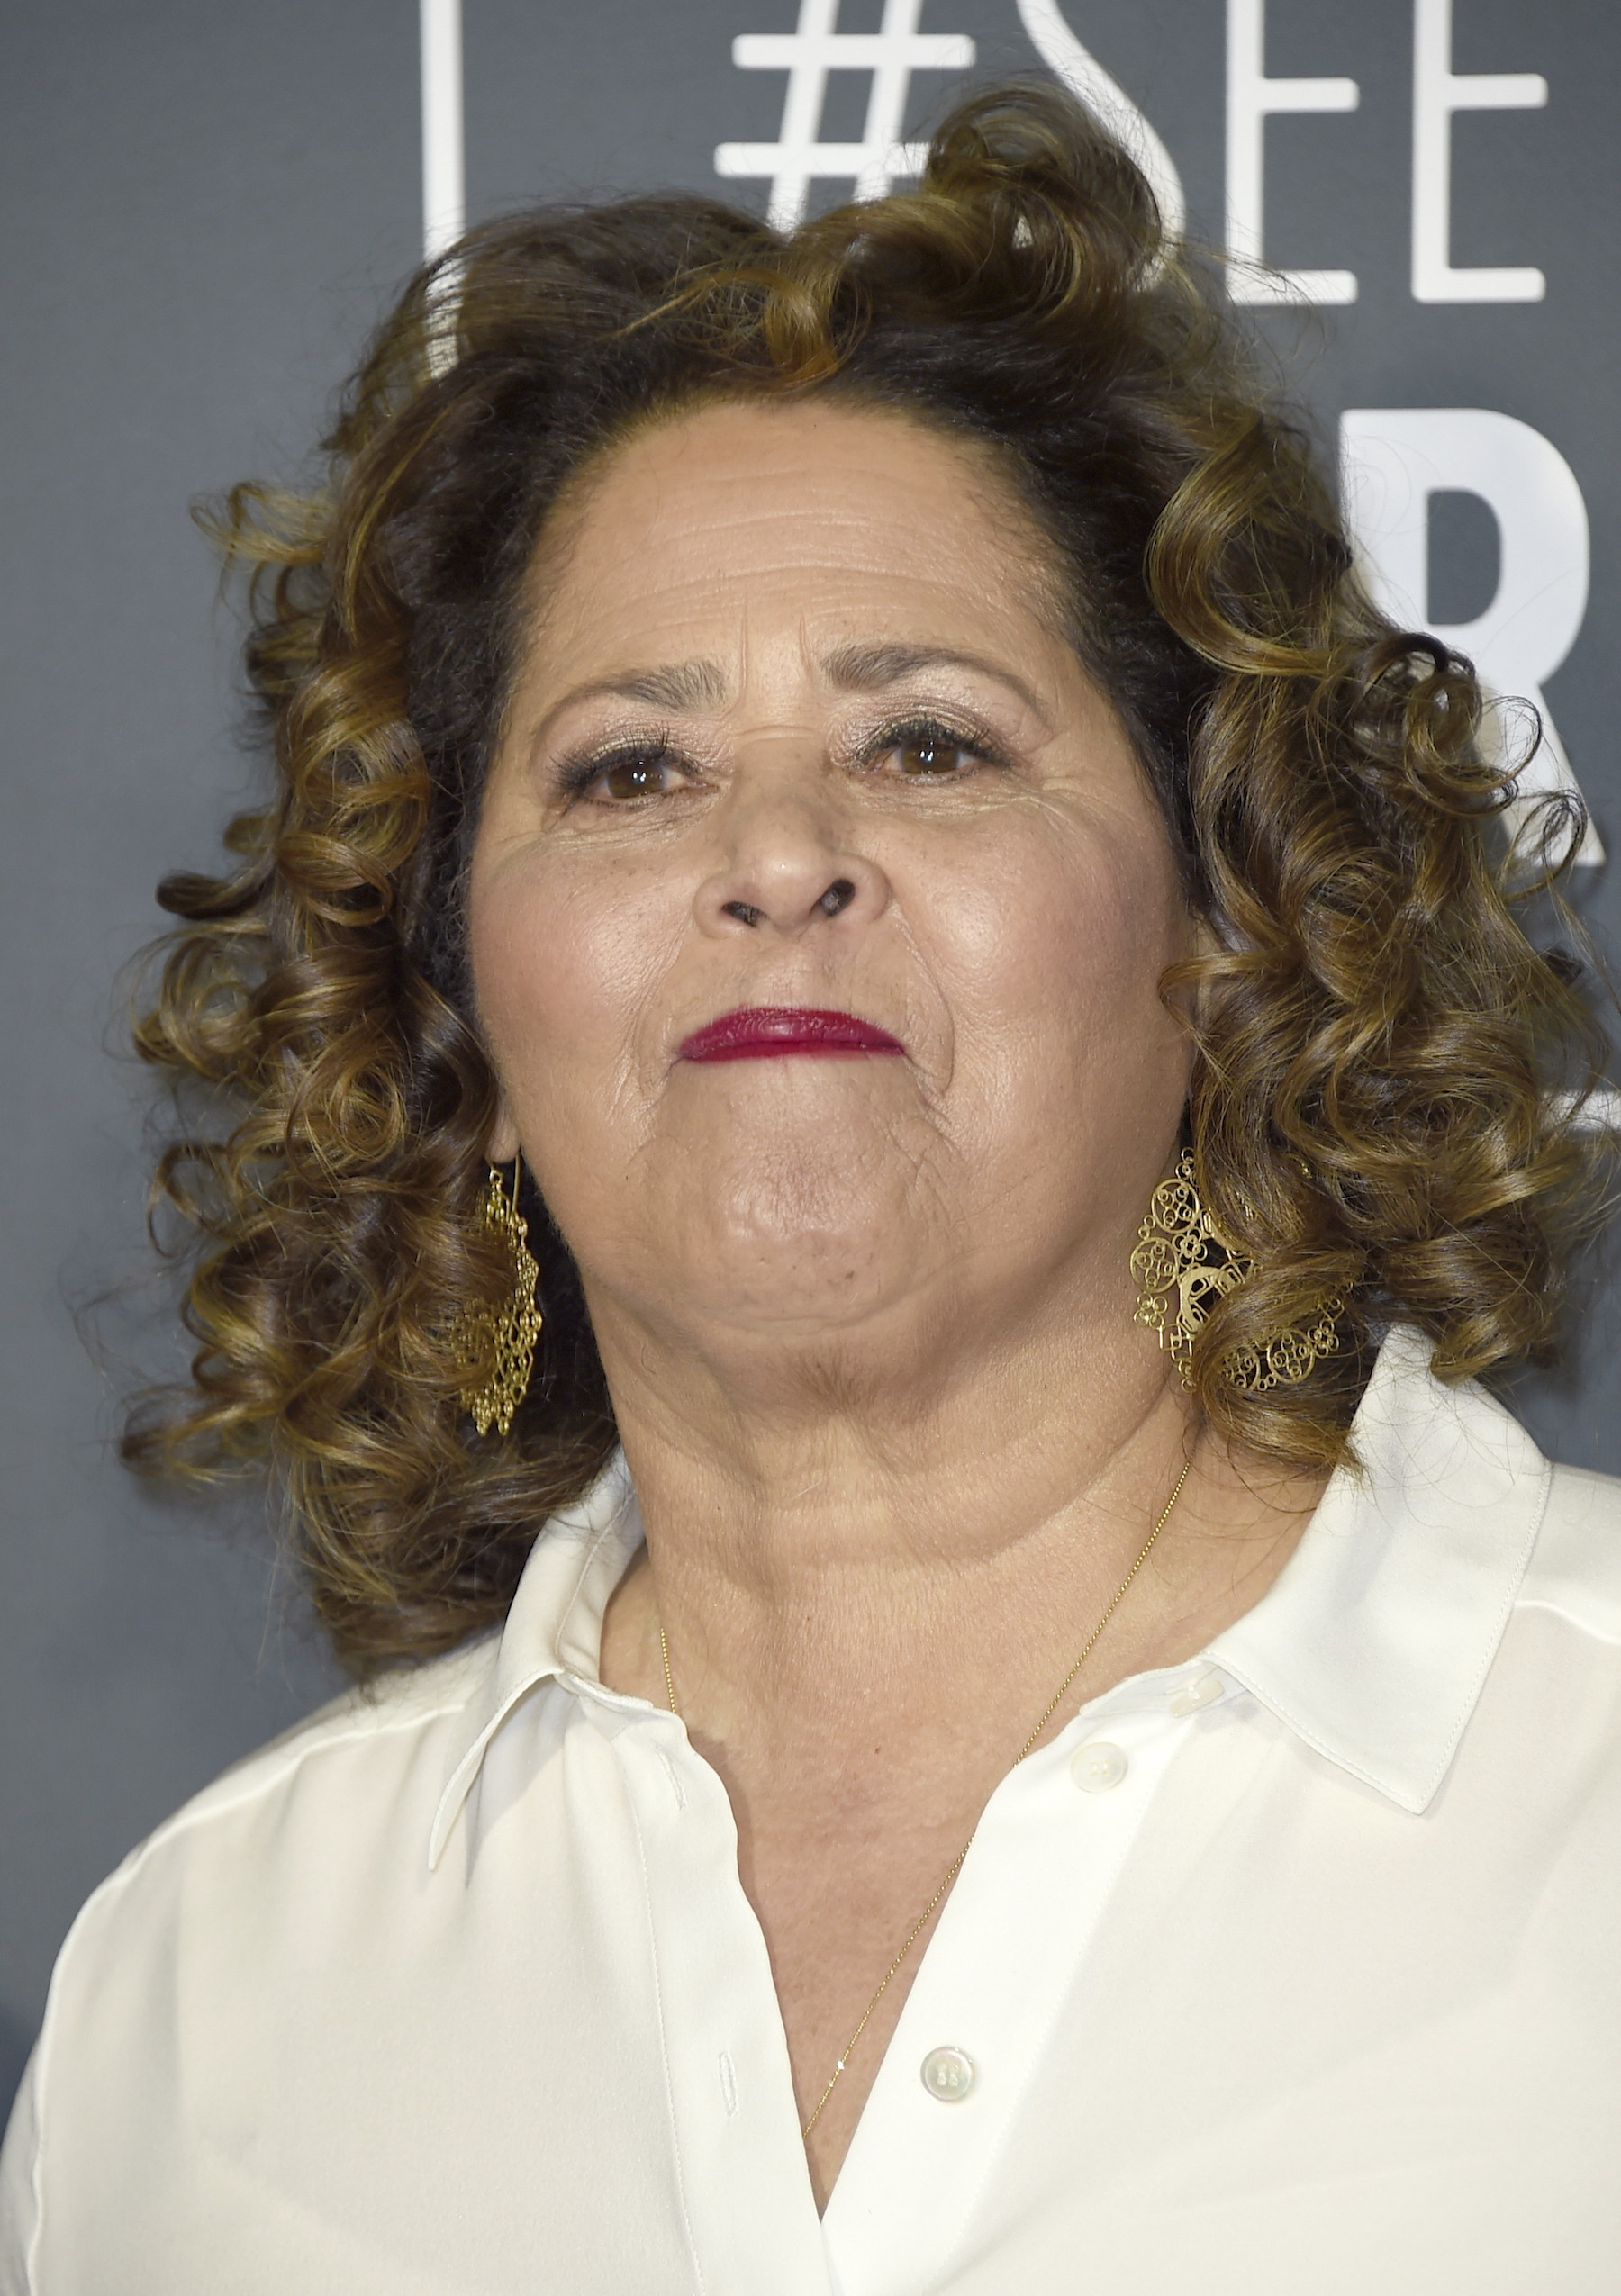 <div class='meta'><div class='origin-logo' data-origin='AP'></div><span class='caption-text' data-credit='Jordan Strauss/Invision/AP'>Anna Deavere Smith arrives at the 24th annual Critics' Choice Awards on Sunday, Jan. 13, 2019, at the Barker Hangar in Santa Monica, Calif.</span></div>